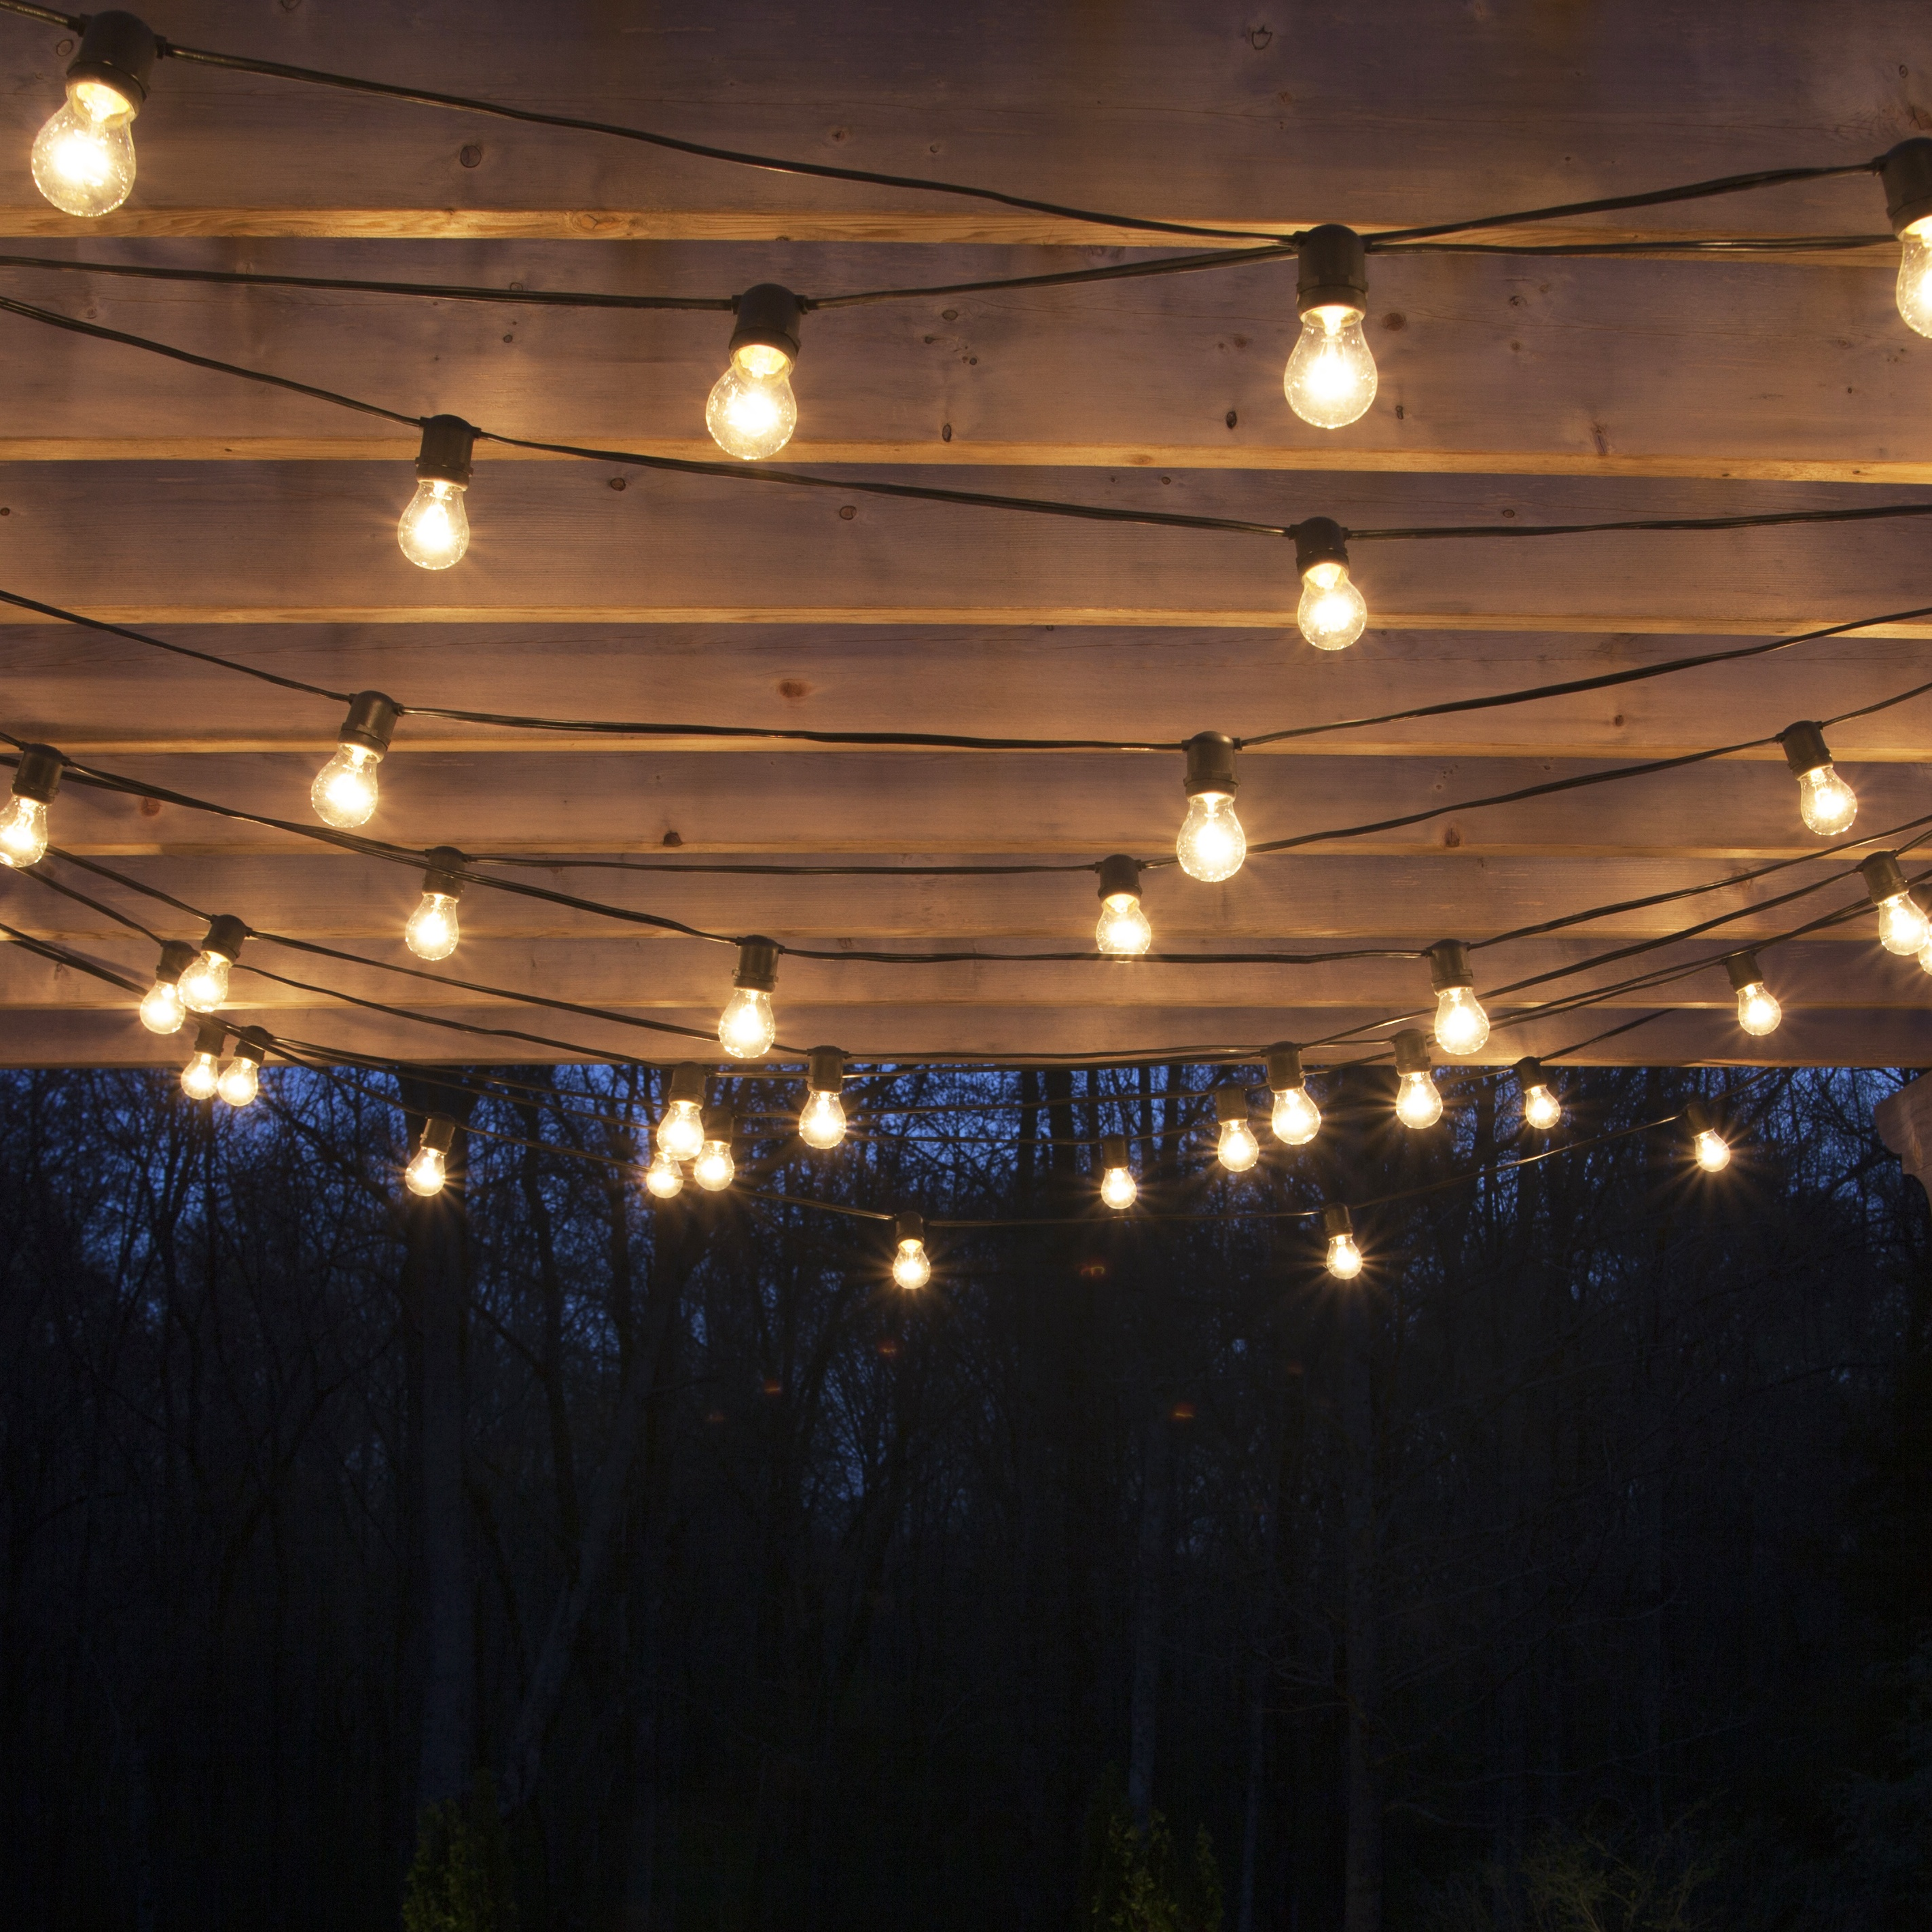 How To String Christmas Lights On Ceiling : How to Hang Patio Lights